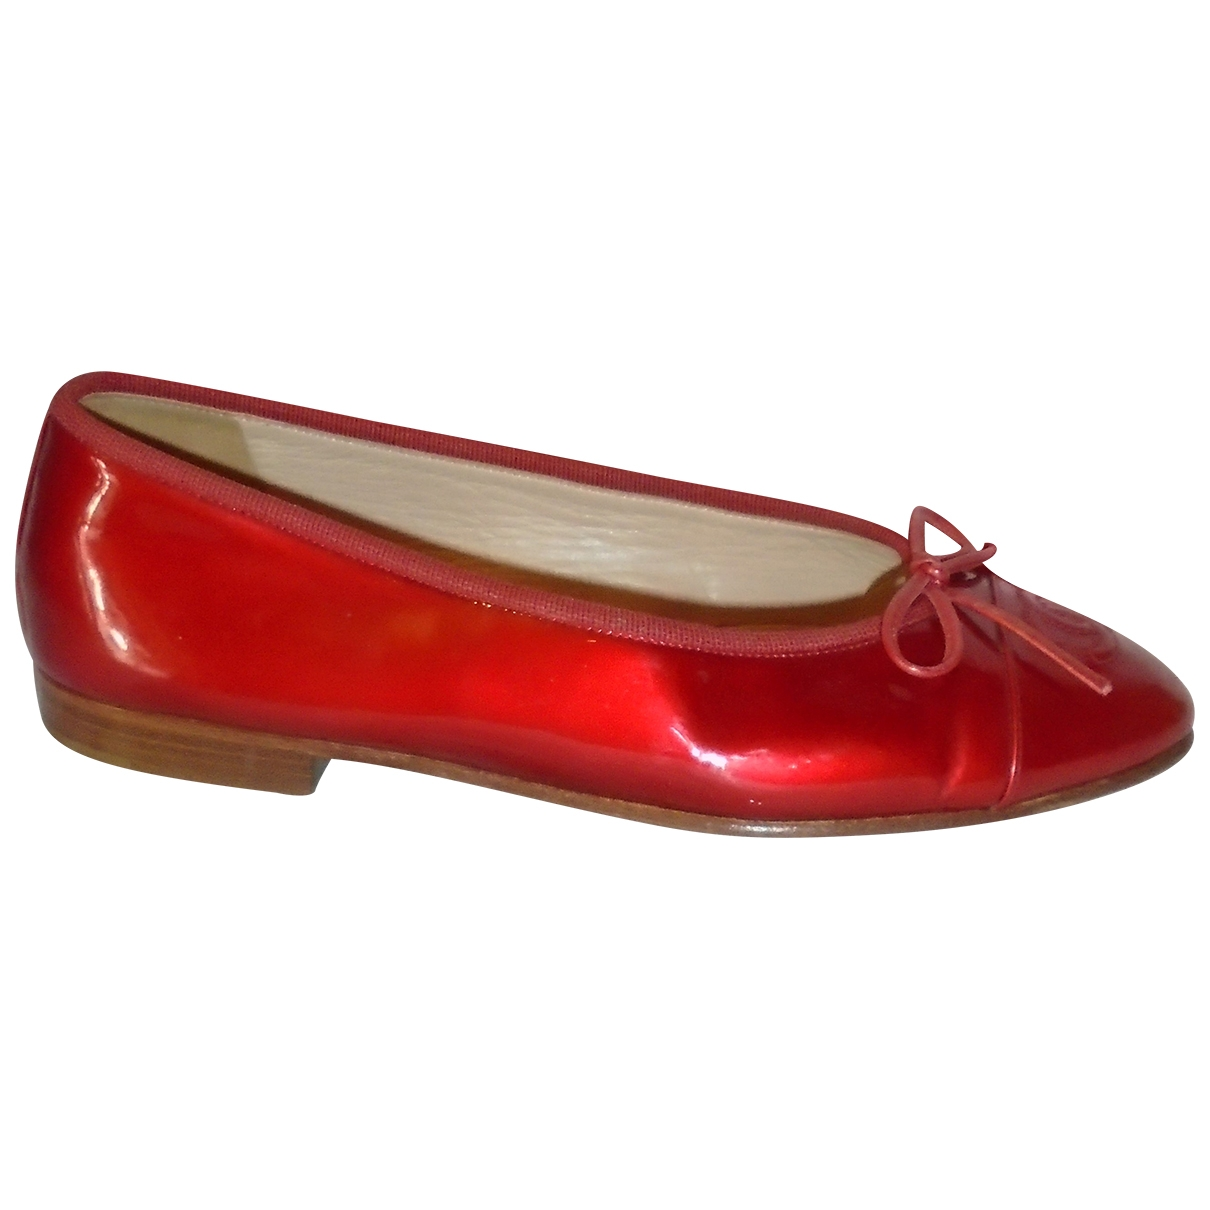 Chanel \N Red Patent leather Ballet flats for Women 35.5 EU